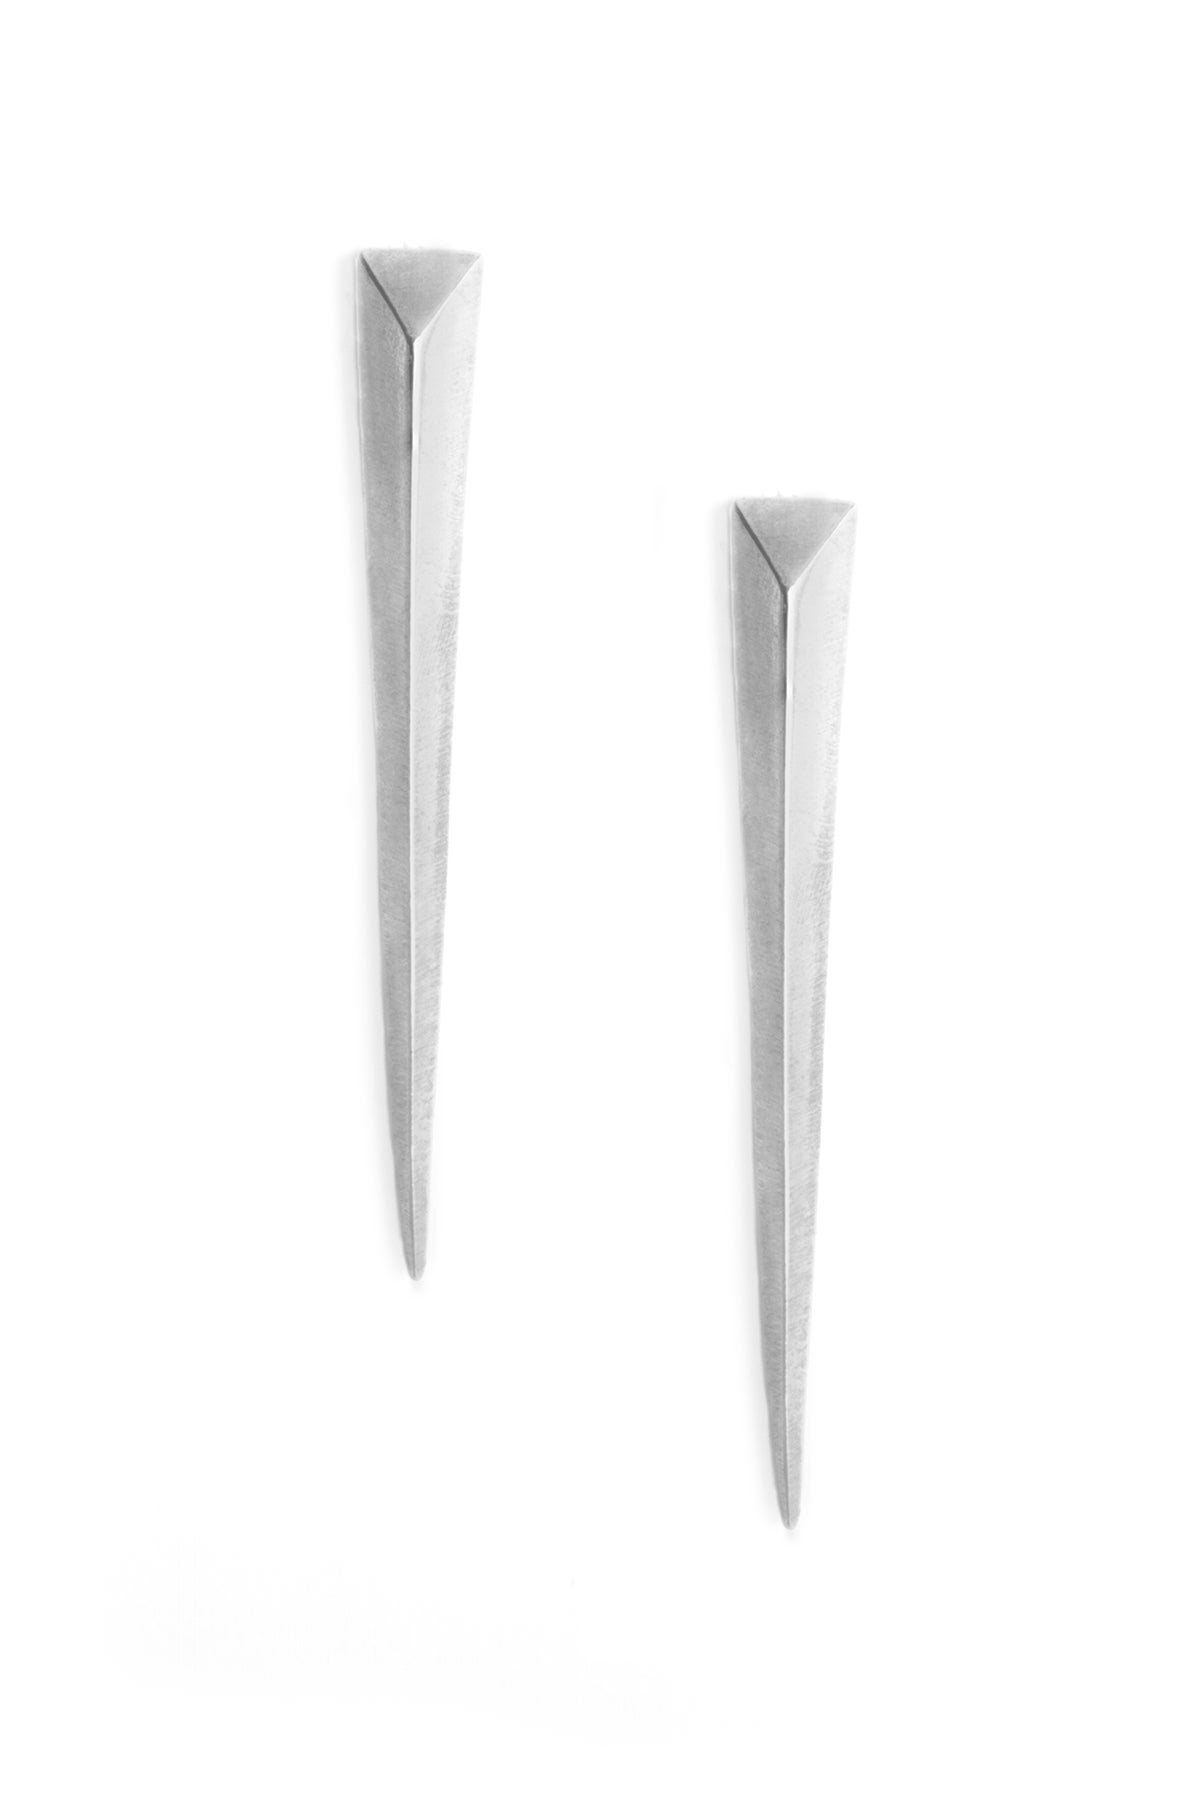 Image of SABER STUDS - LARGE - SILVER